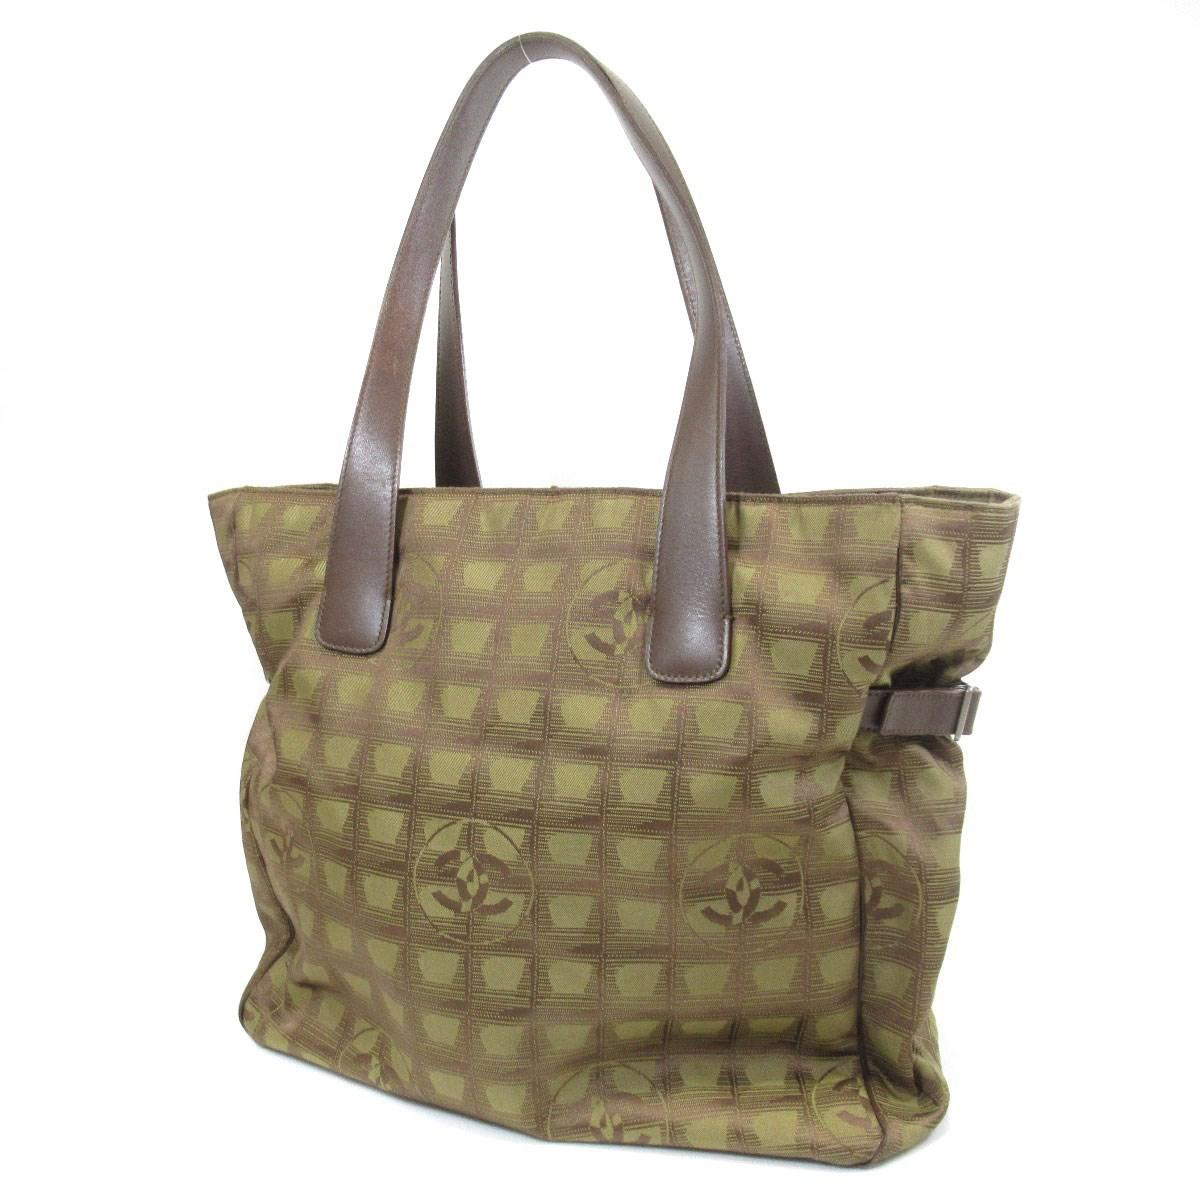 1a07581019ea Lyst - Chanel Nylon Jacquard Tote Bag New Travel Line in Green